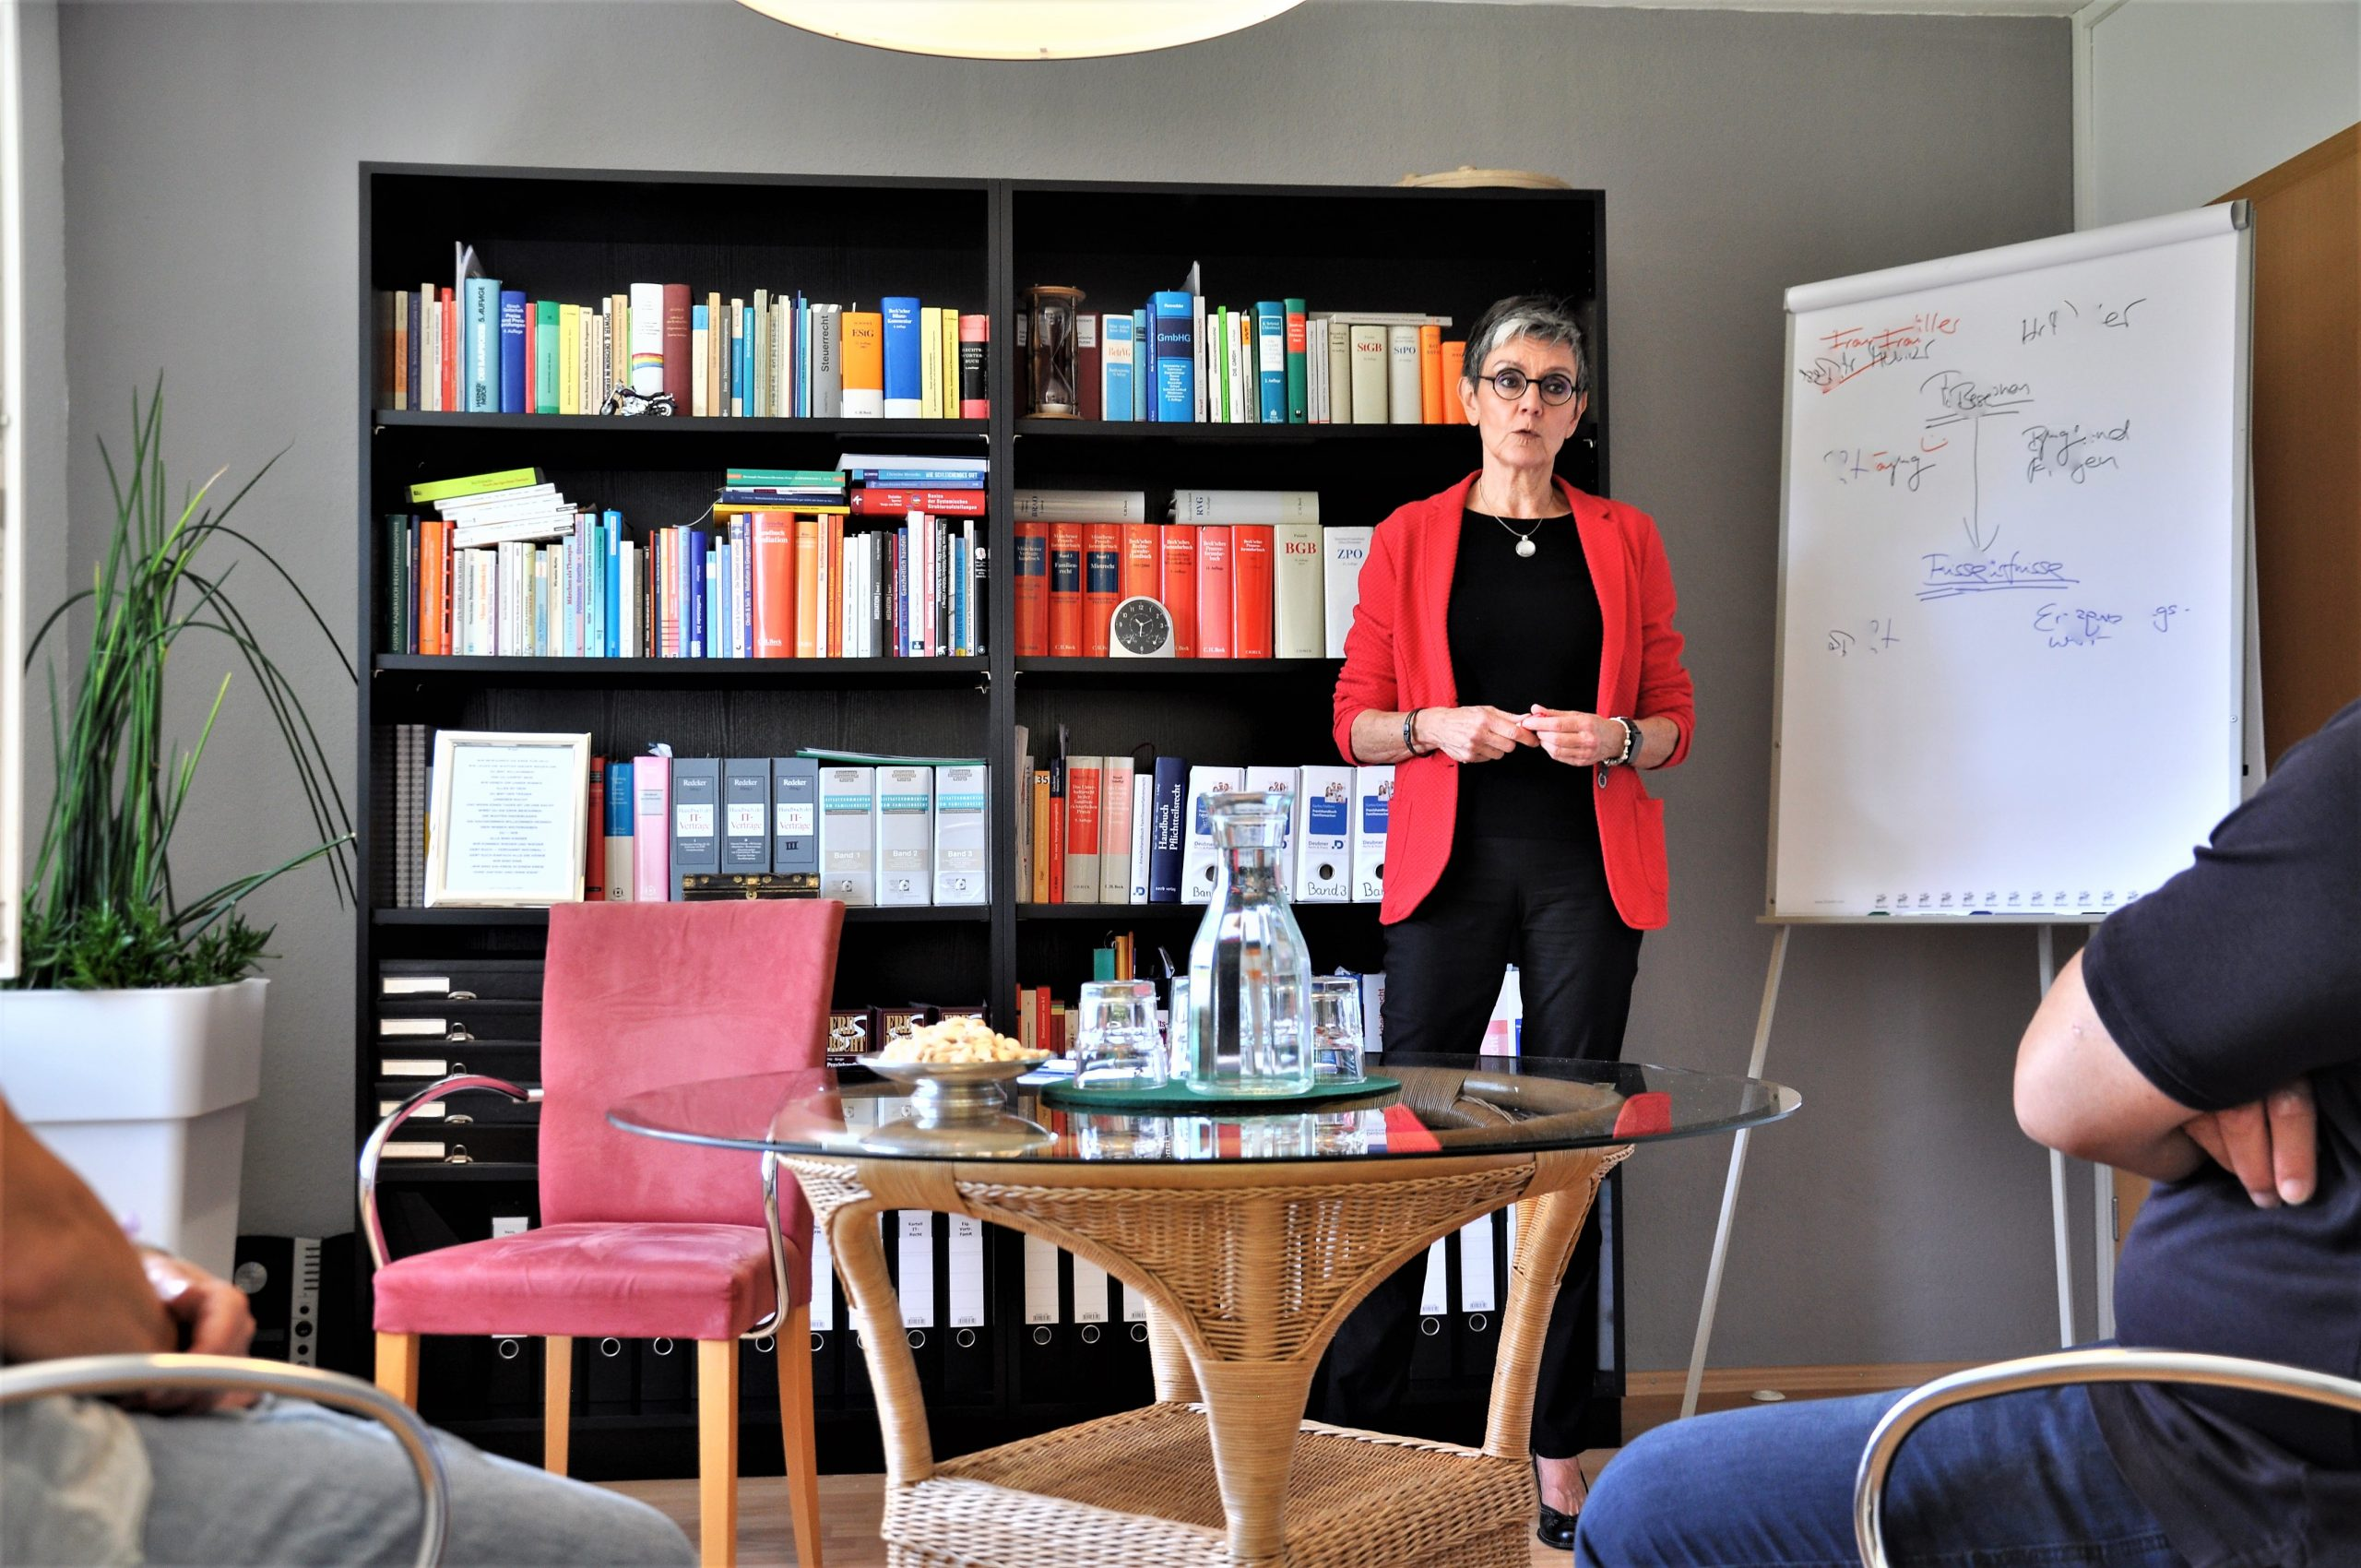 Mediation Anke Wagensonner Laufenburg